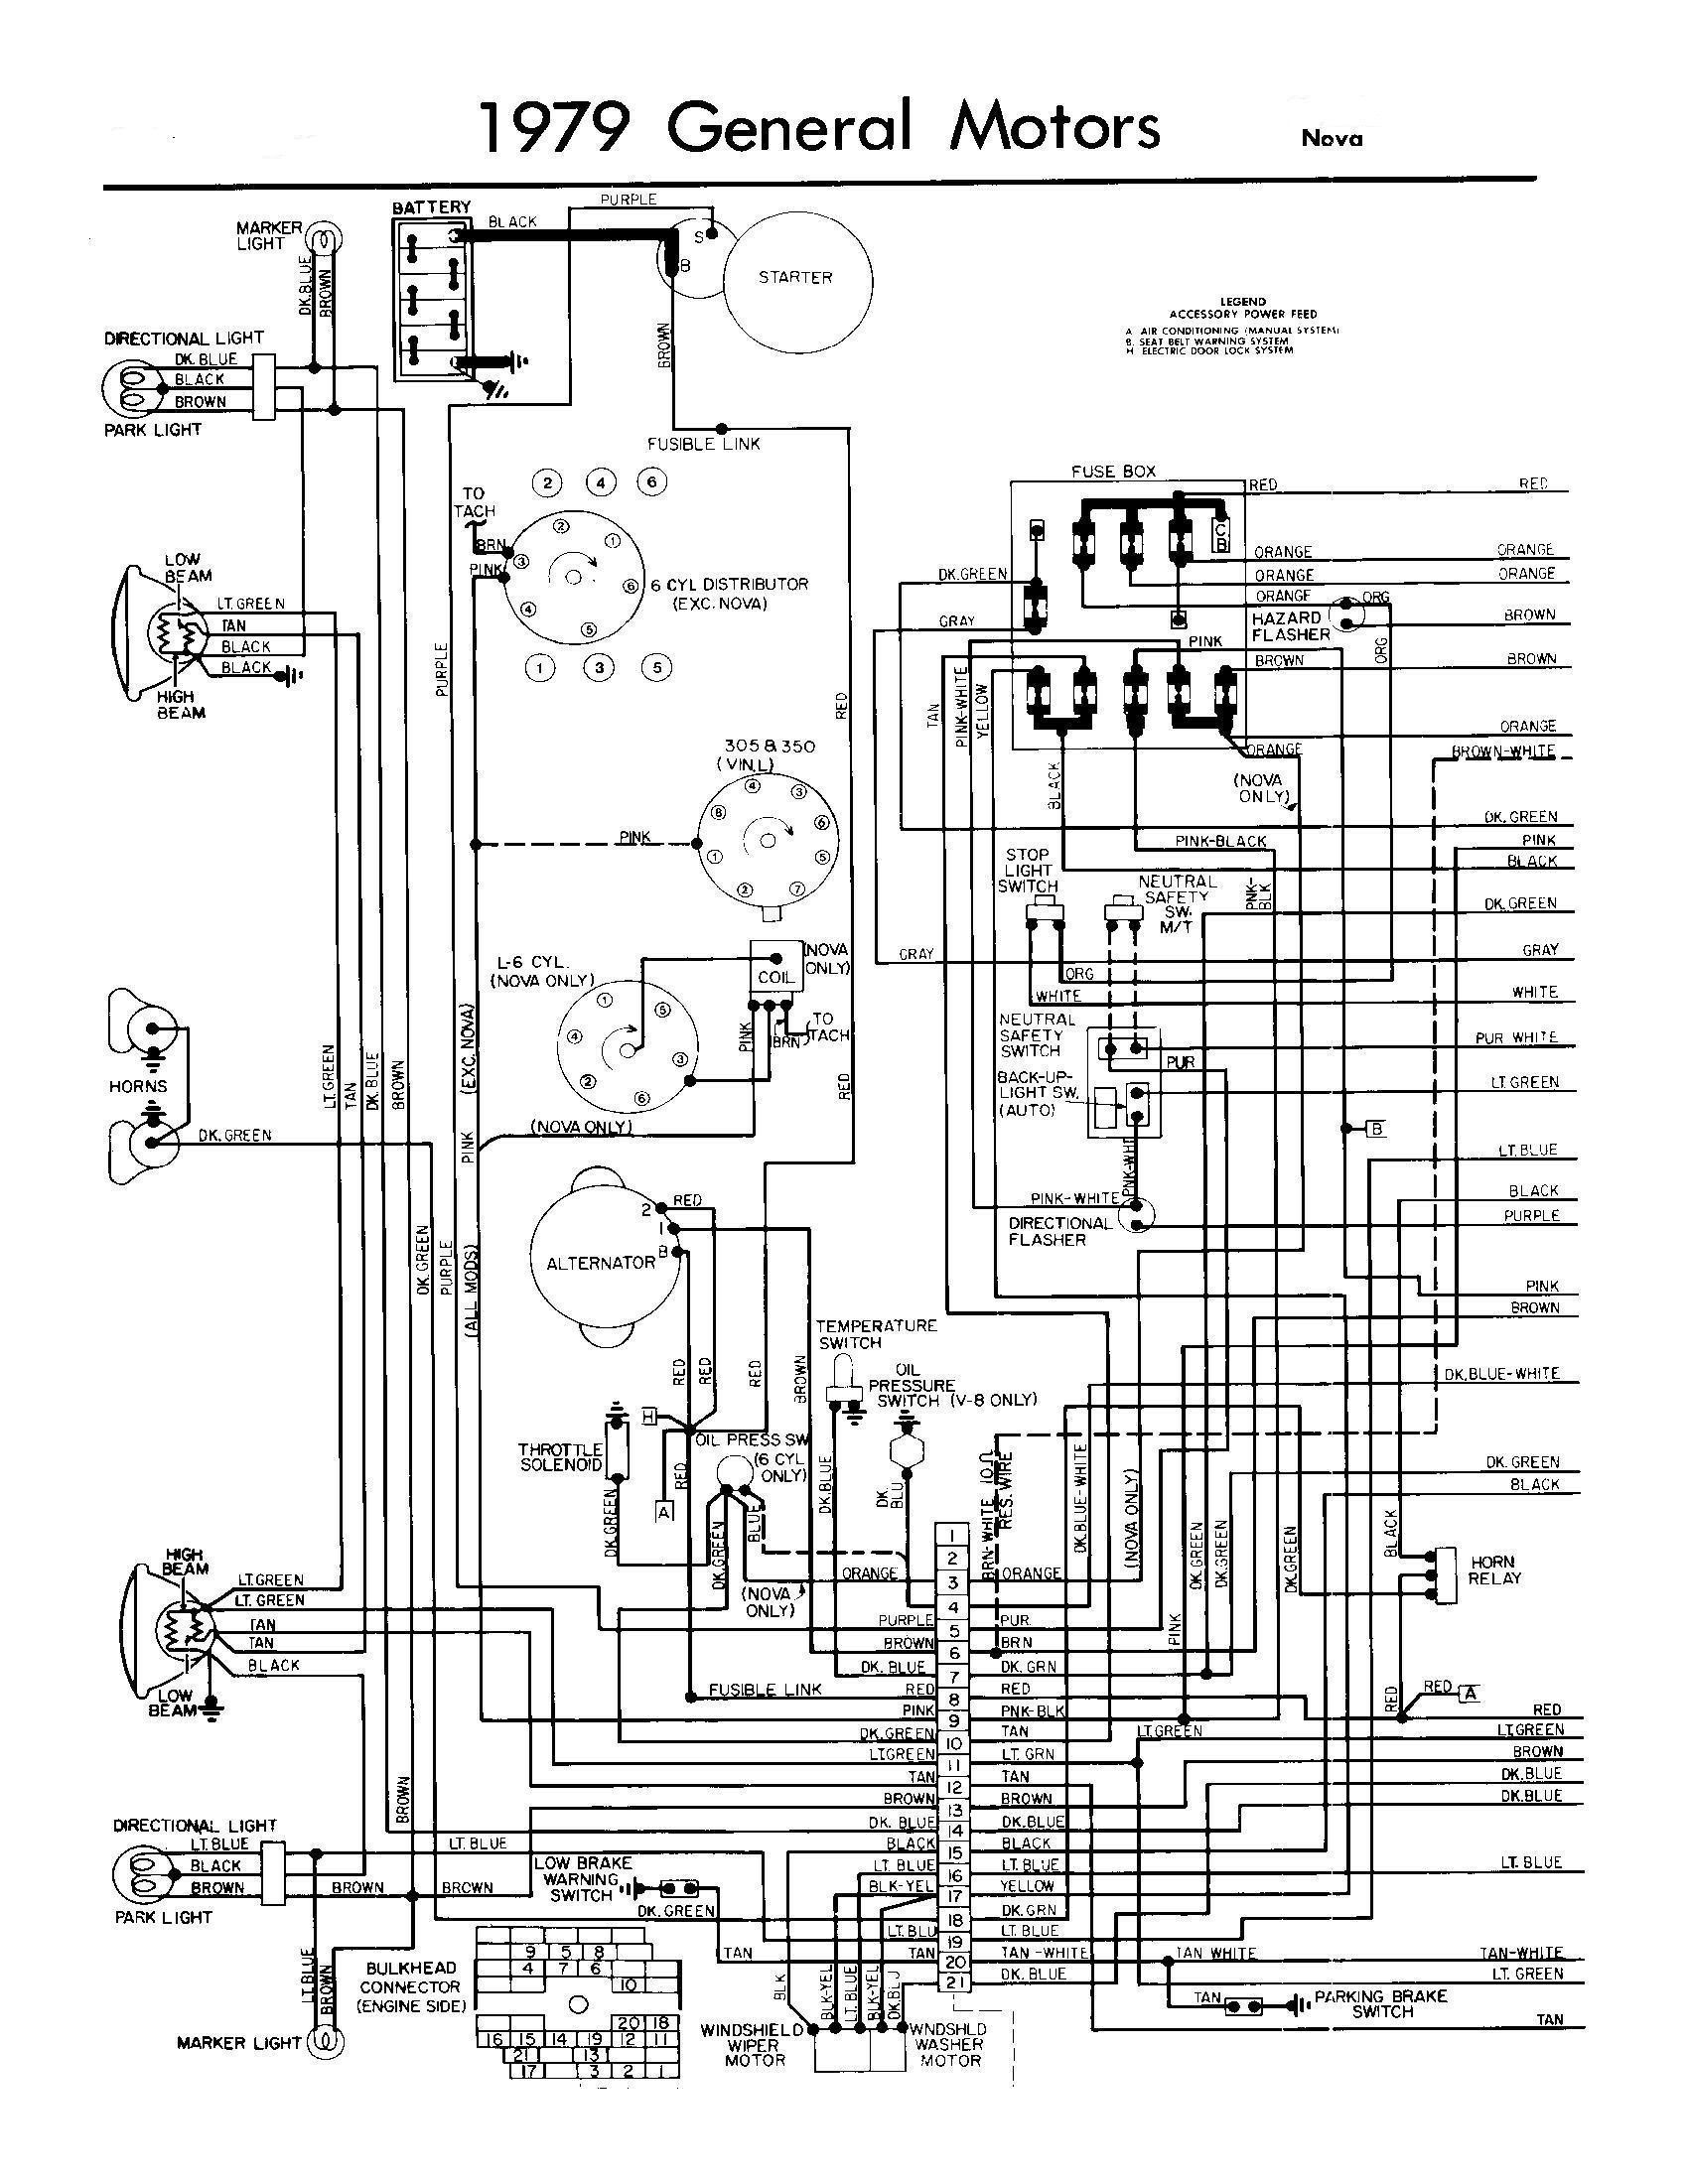 1963 gmc dash wiring diagram diy enthusiasts wiring diagrams u2022 rh okdrywall co